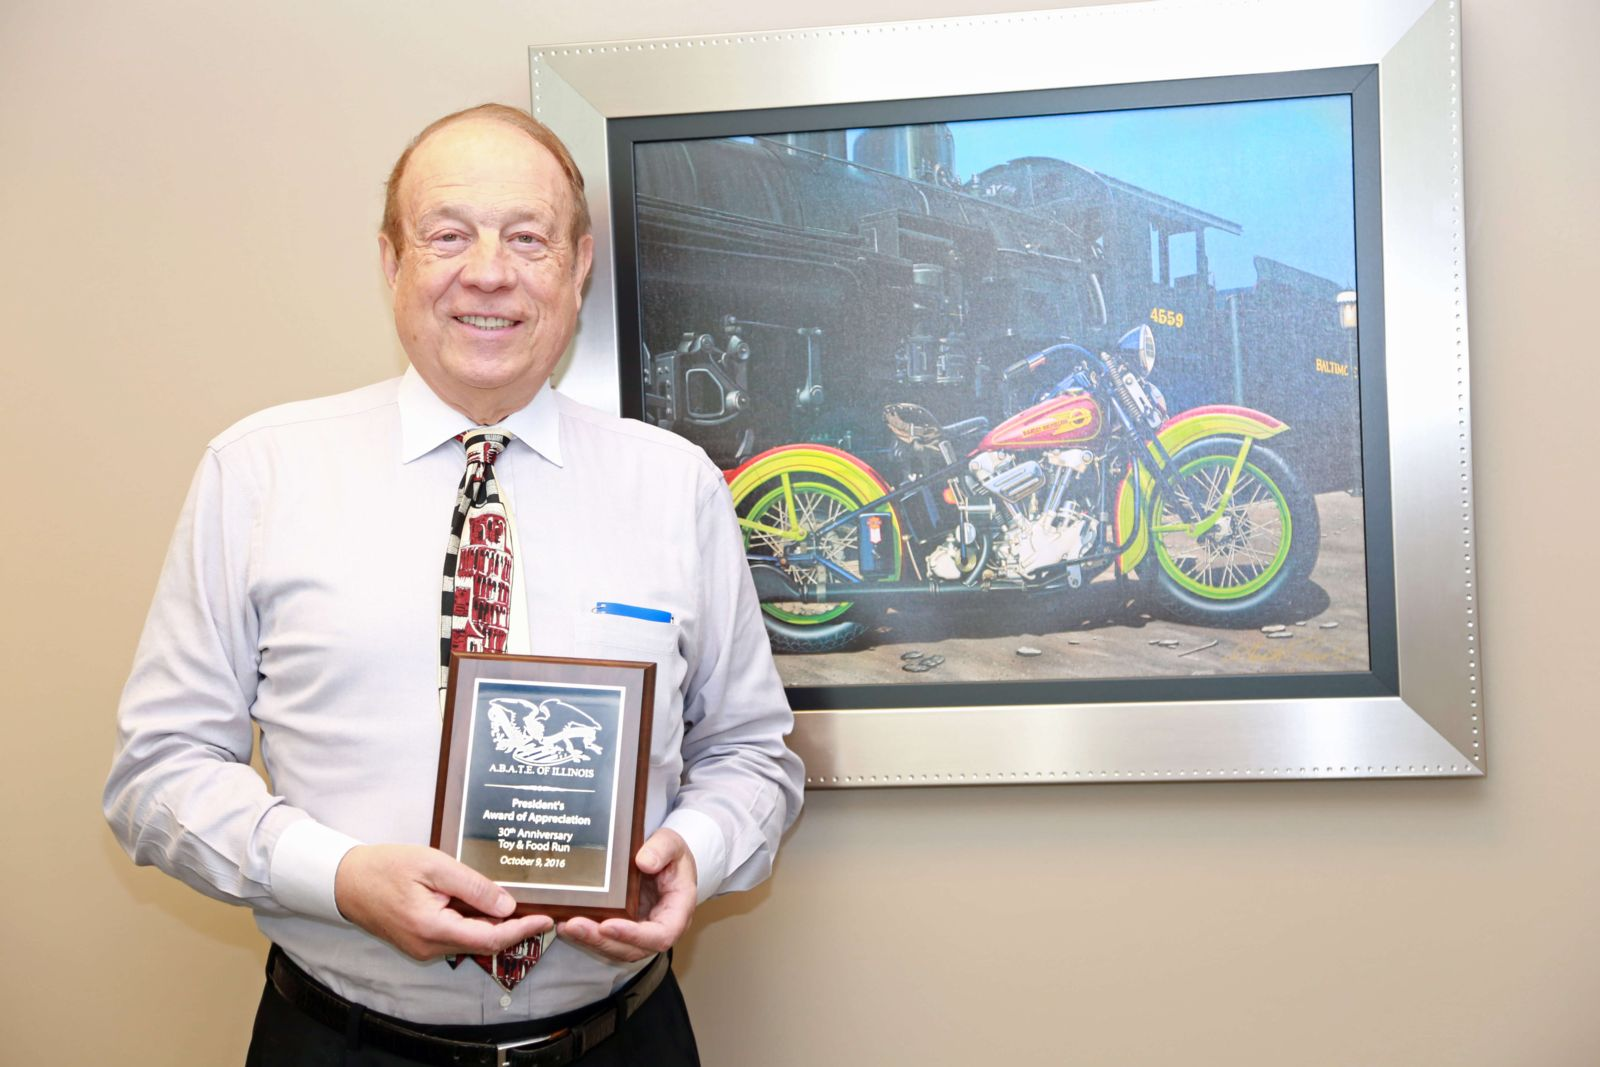 Attorney Michael Hupy awarded as top sponsor